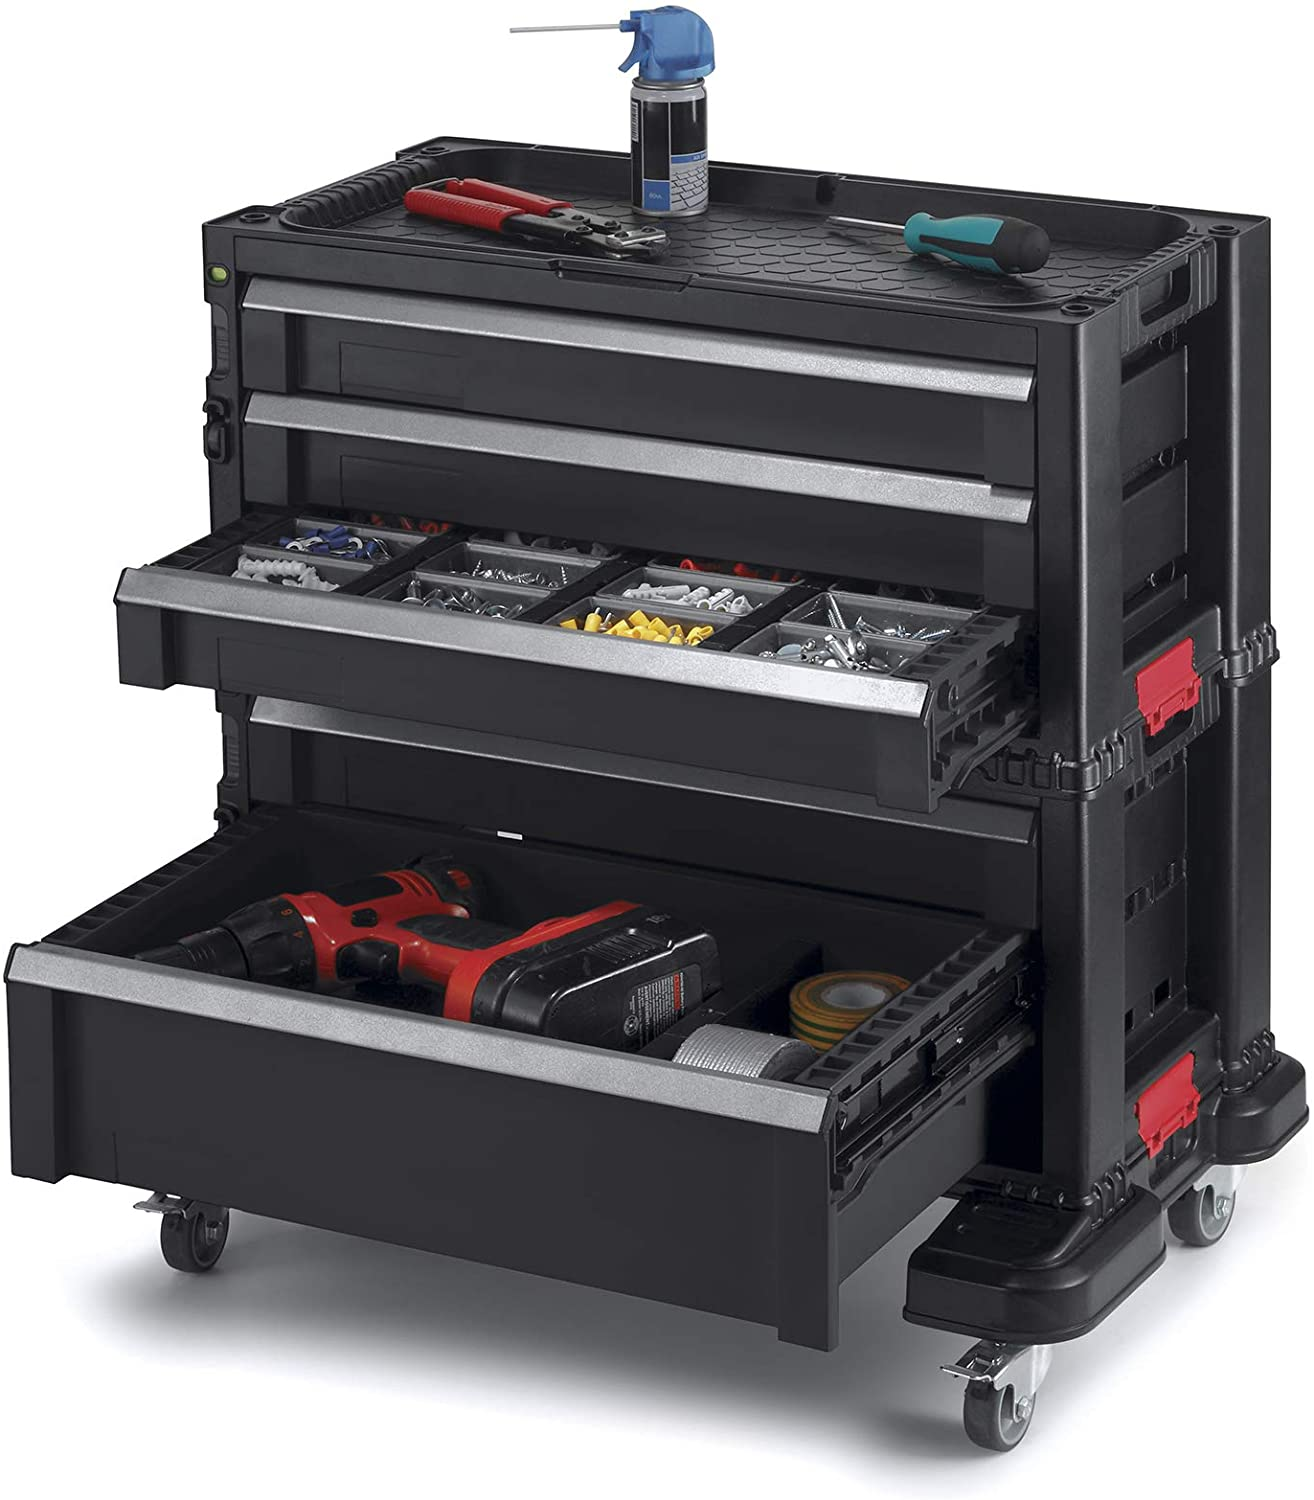 Keter Drawers, Locking System 20 Removable Bins Perfect Organizer  Automotive Tools for Mechanics and Home Garage, Kunststoff, schwarz